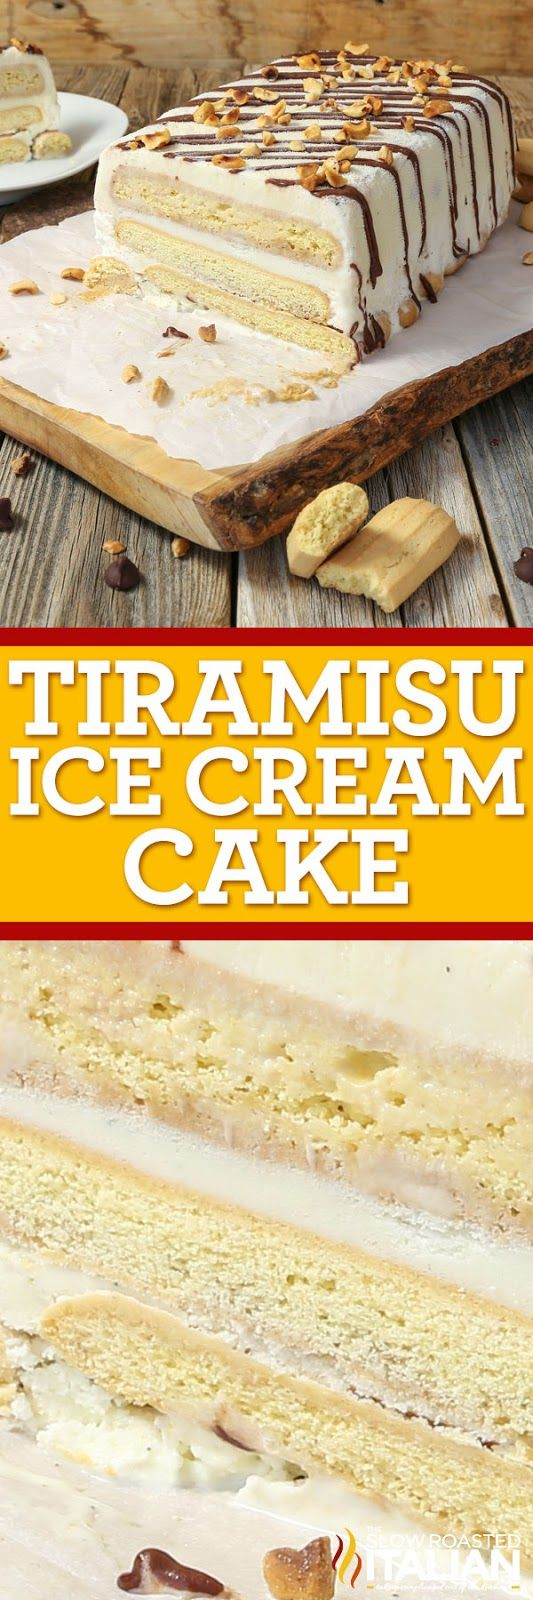 Tiramisu Ice Cream Cake is an unforgettable transformation of a the classic Italian dessert into a simple recipe for a glorious ice cream cake unlike anything you have had before. It is rich, creamy, and absolutely special occasion worthy! #MedagliadOroMoment #ad